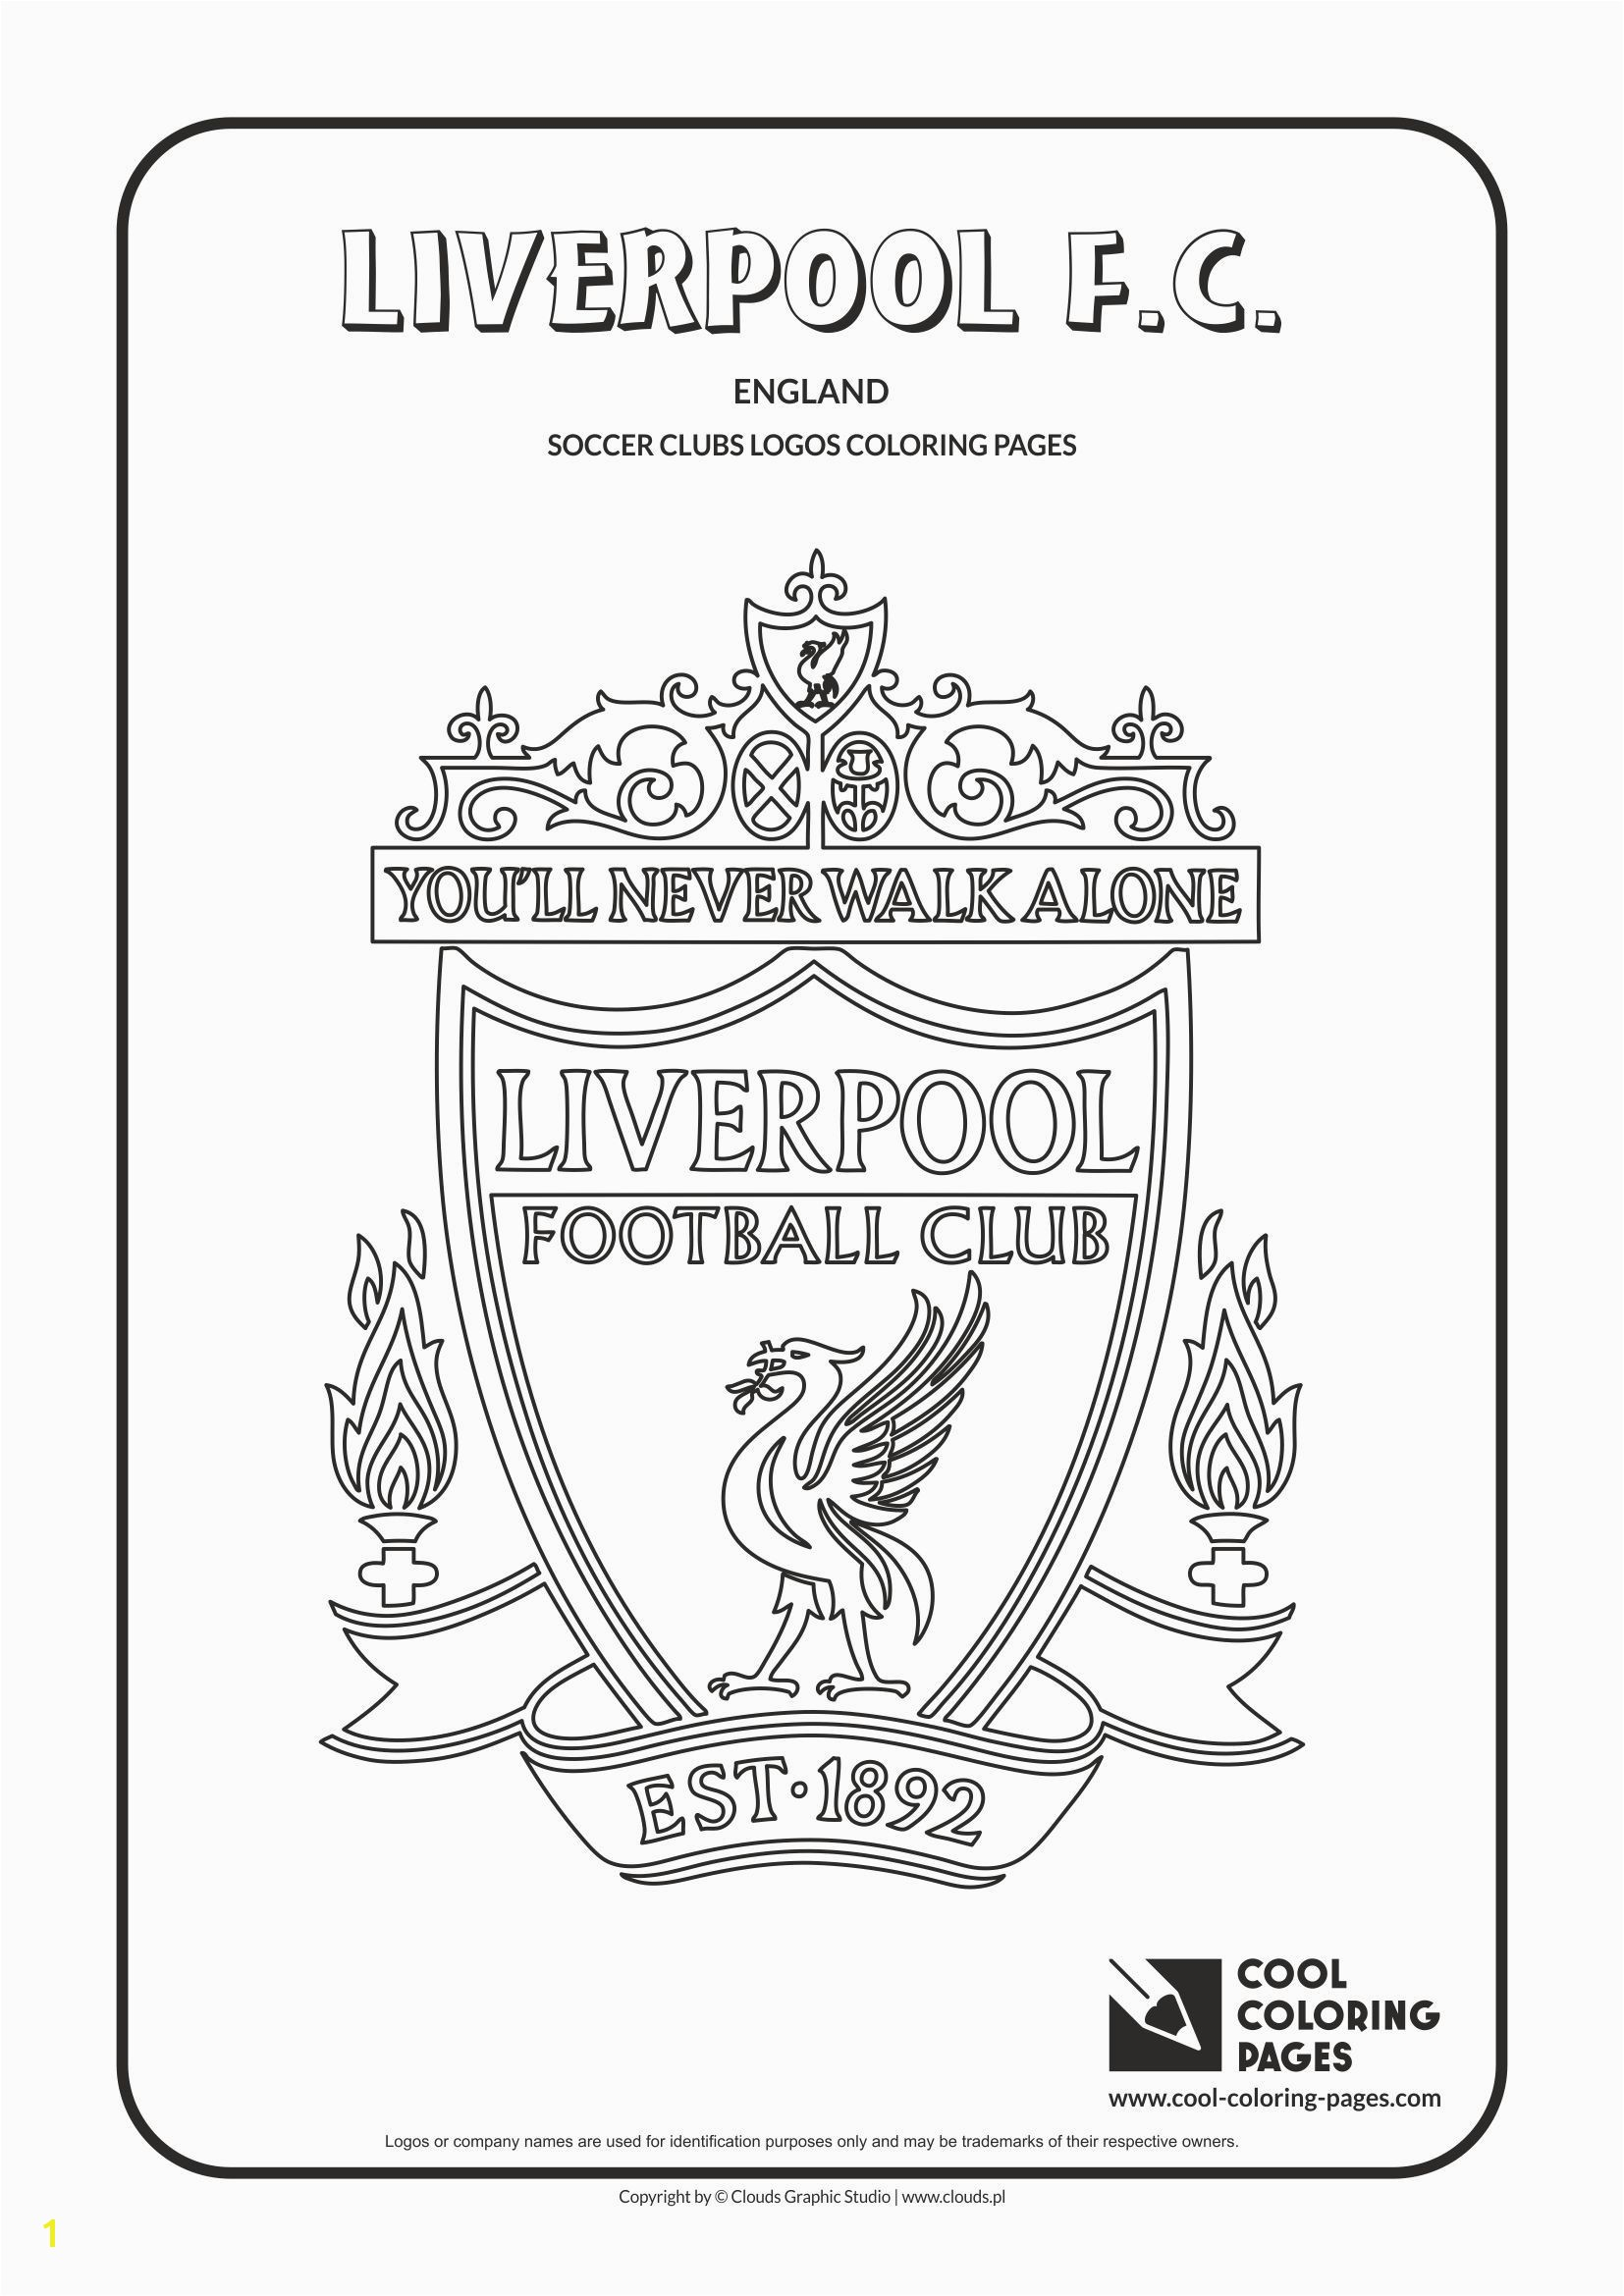 Liverpool F C logo coloring Coloring page with Liverpool F C logo…